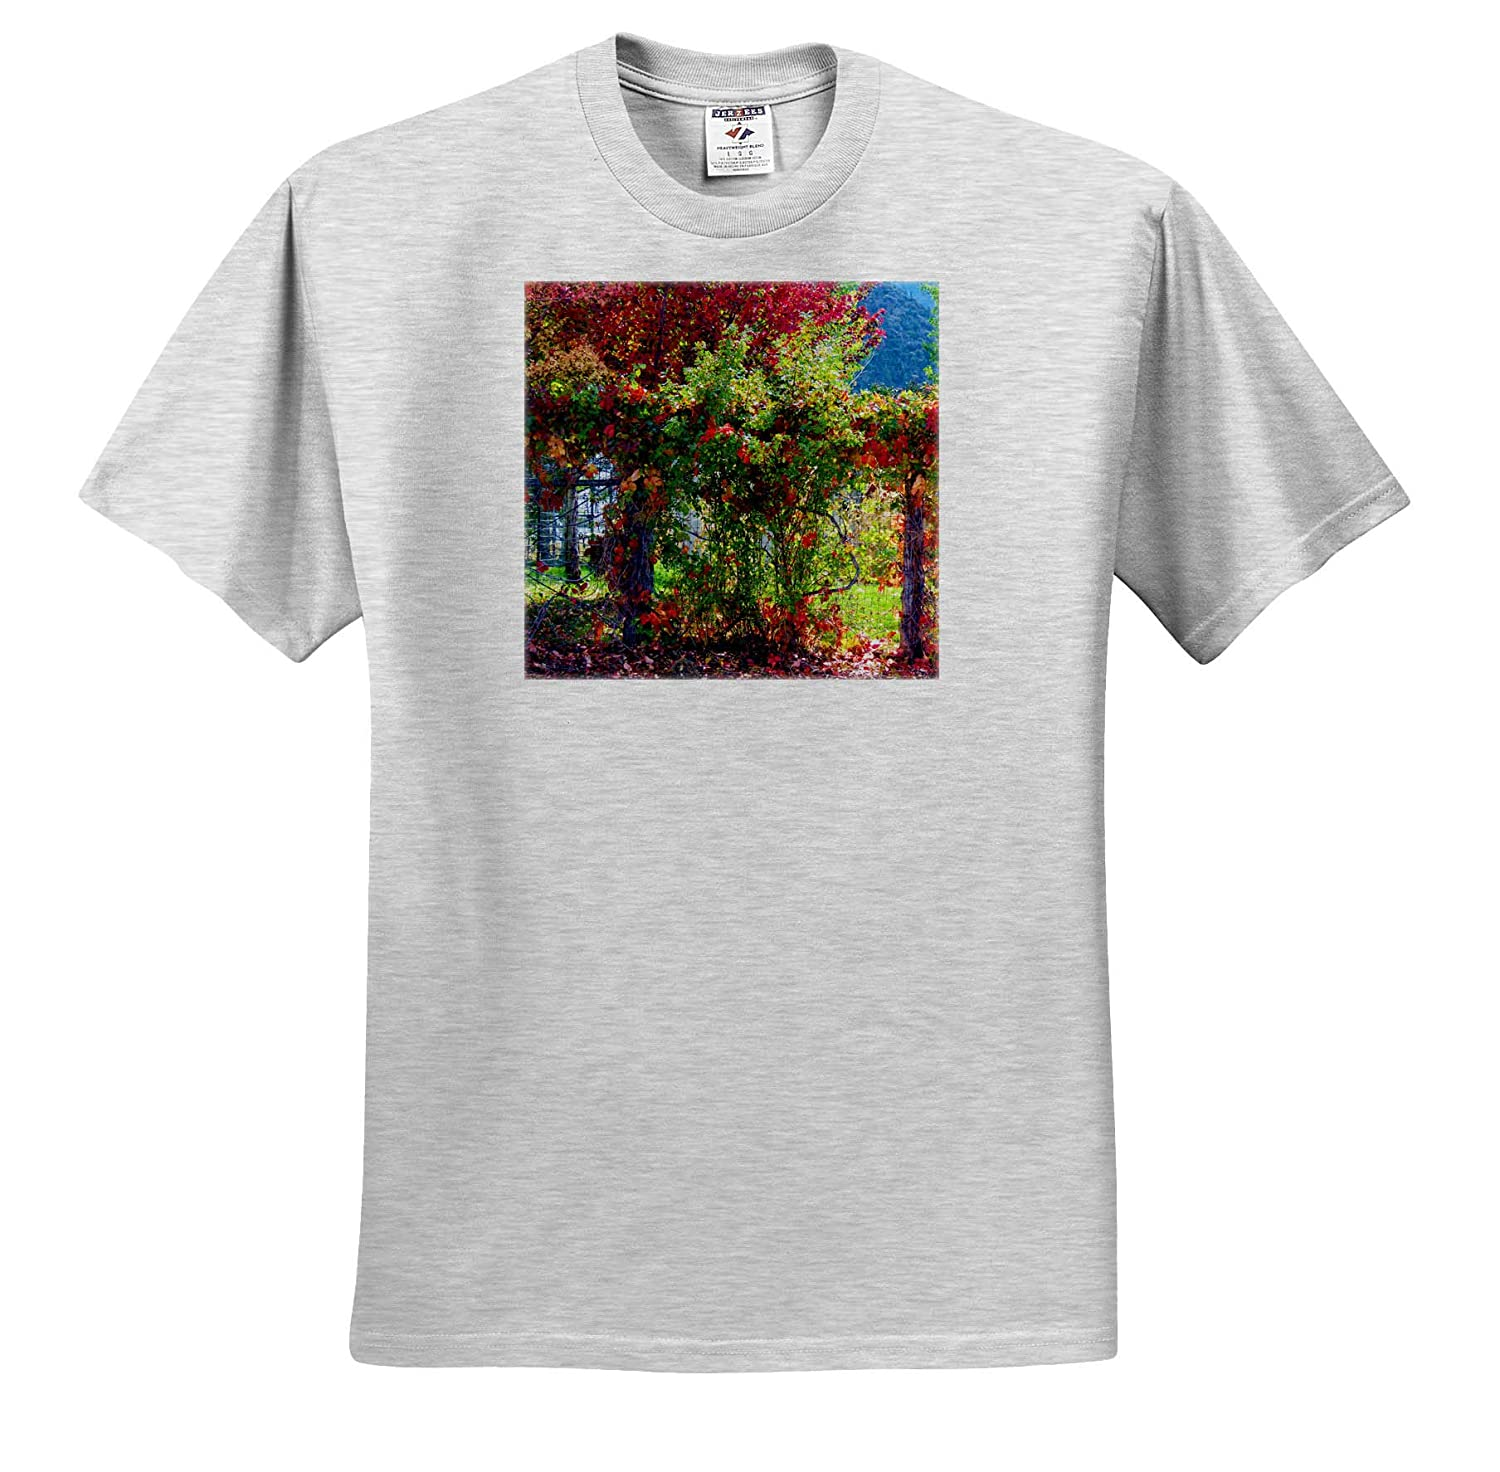 Red Vines and Tree T-Shirts Red and Green Vines in Fall on a Tree and Plants 3dRose Jos Fauxtographee